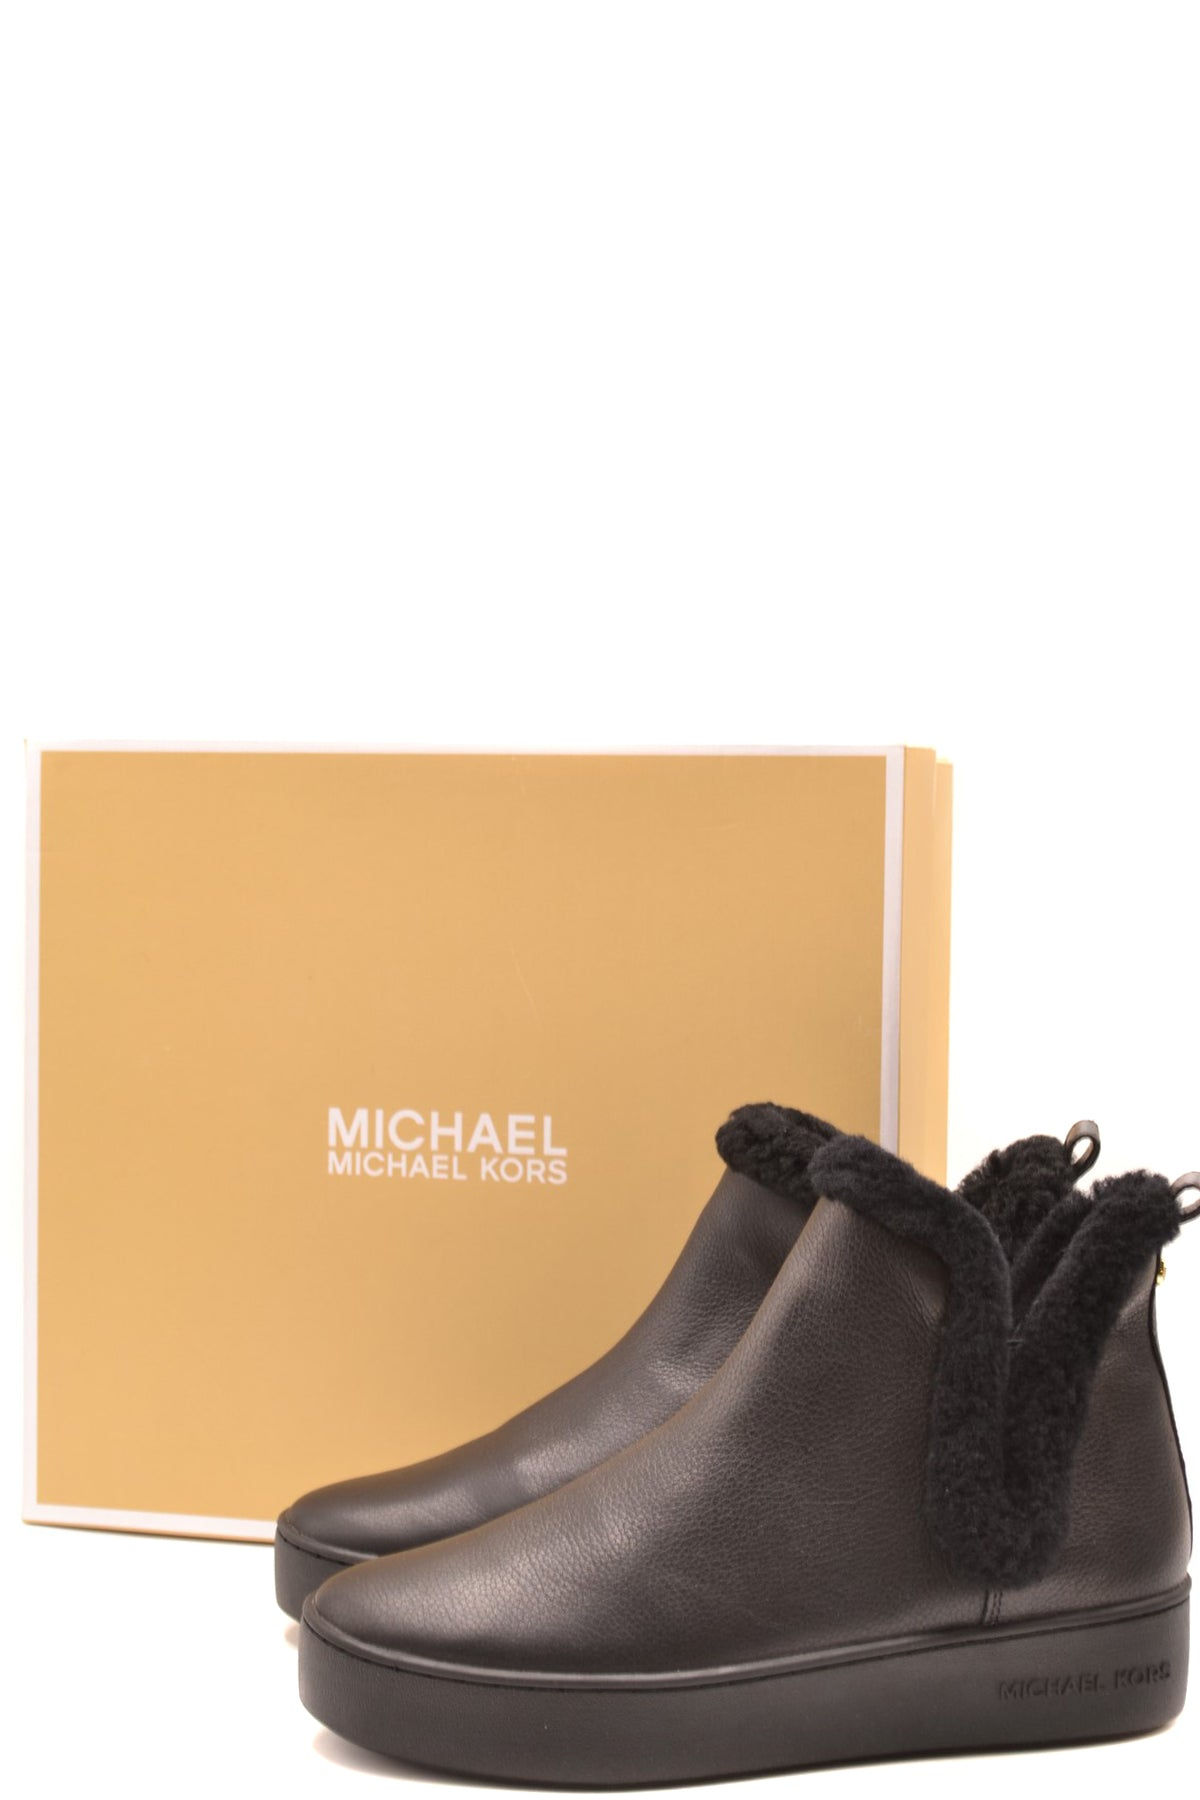 Shoes Michael Kors-Women's Fashion - Women's Shoes - Women's Boots-Product Details Manufacturer Part Number: 43F9Ahfp1LYear: 2020Composition: Leather 100%Size: UsGender: WomanMade In: ChinaSeason: Fall / WinterType Of Accessory: BootsMain Color: BlackTerms: New With Label-Keyomi-Sook